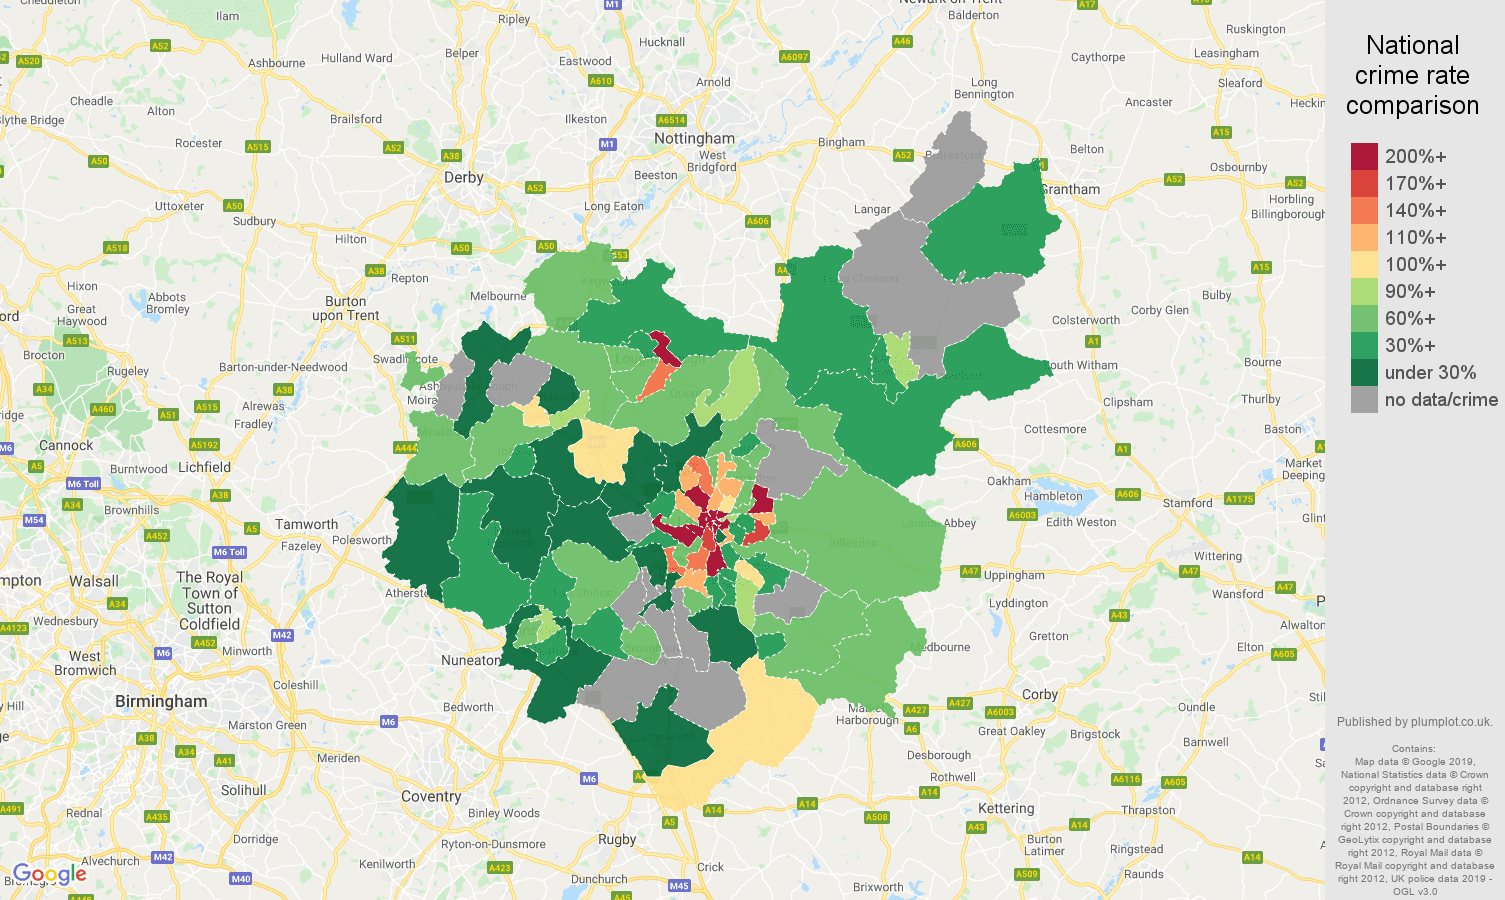 Leicestershire possession of weapons crime rate comparison map